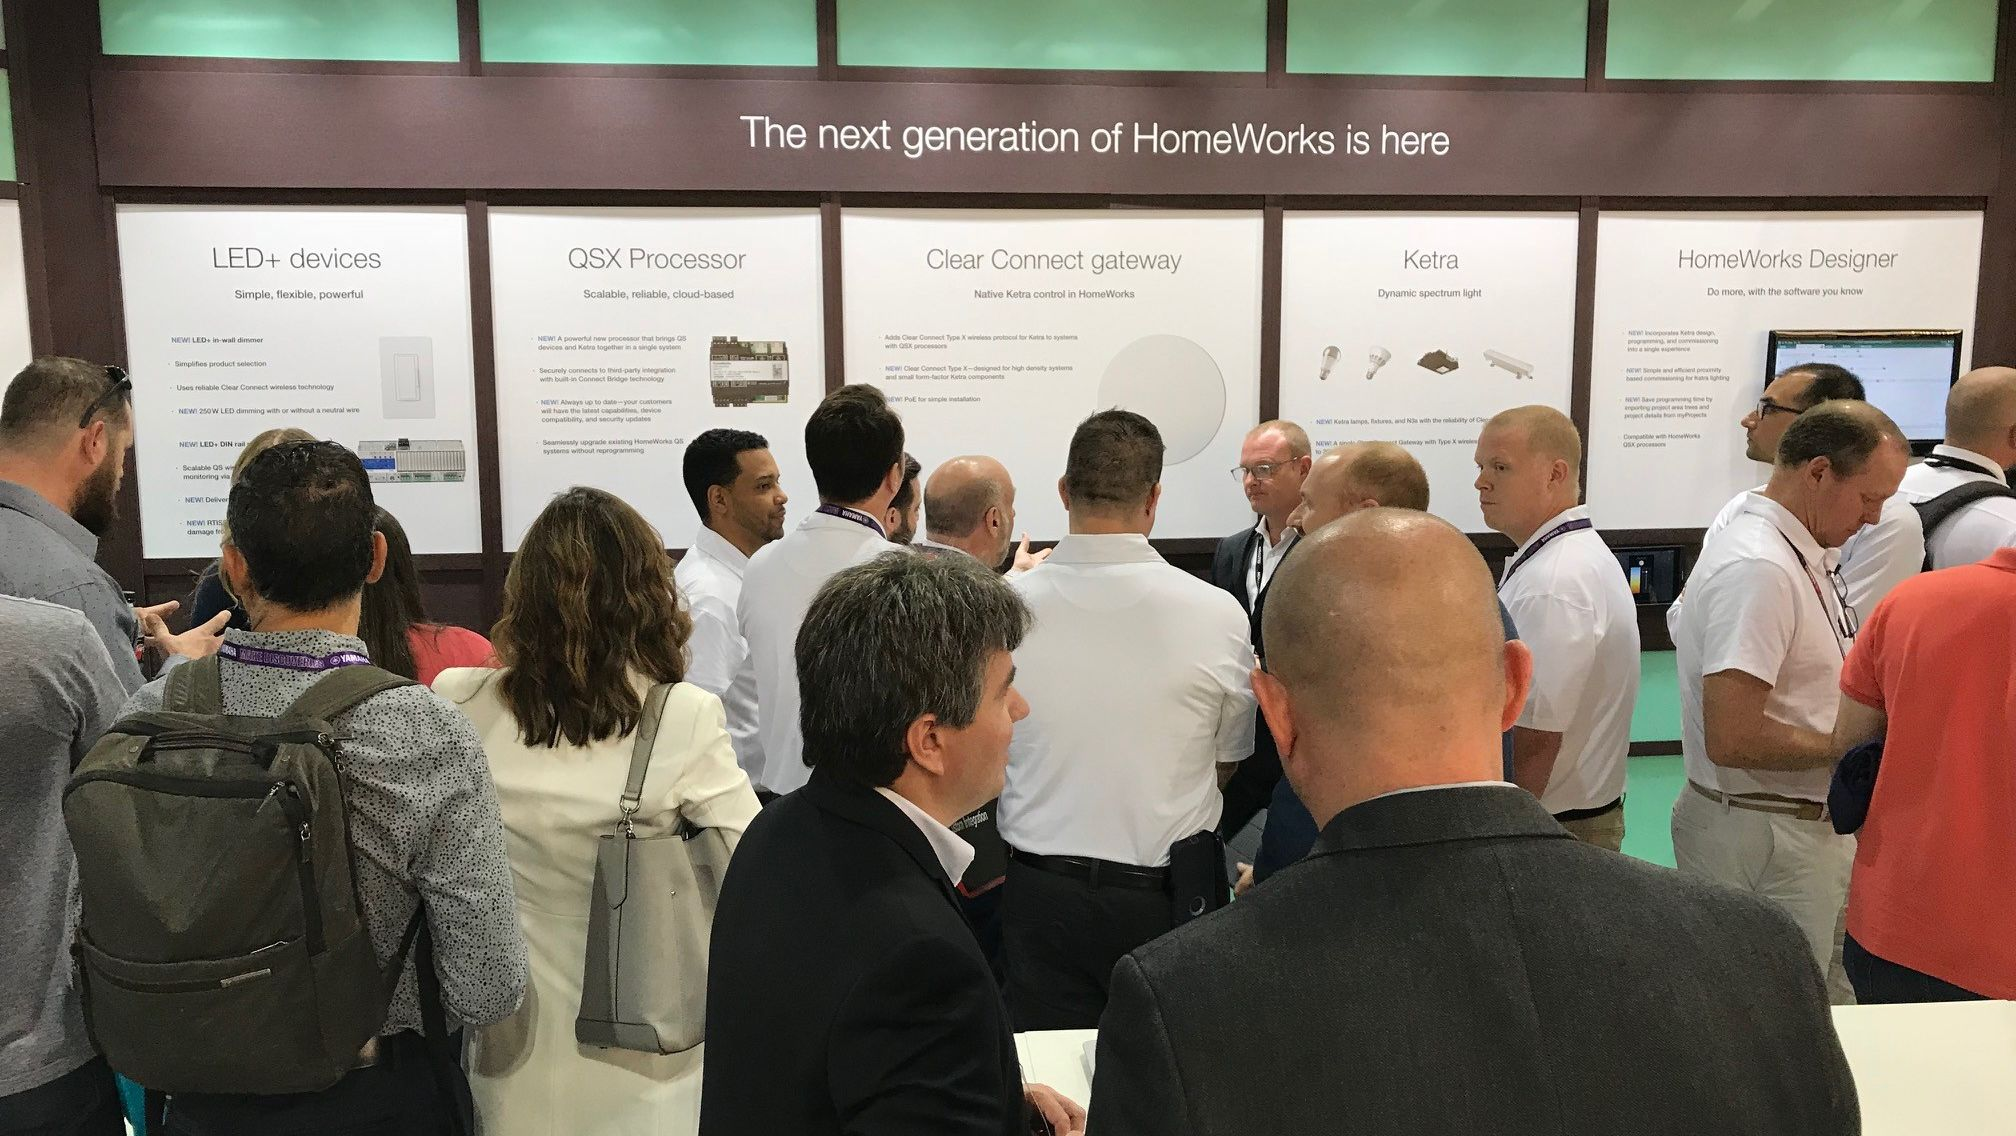 Today's the last day to stop by #Booth2501 to check out our latest and greatest smart offerings, as well as the #LutronSanctuary. From our Roller 64 shades to our next generation of HomeWorks, it's #smart control that you won't want to miss out on. #CEDIAExpo https://t.co/3ixxqcQYpz